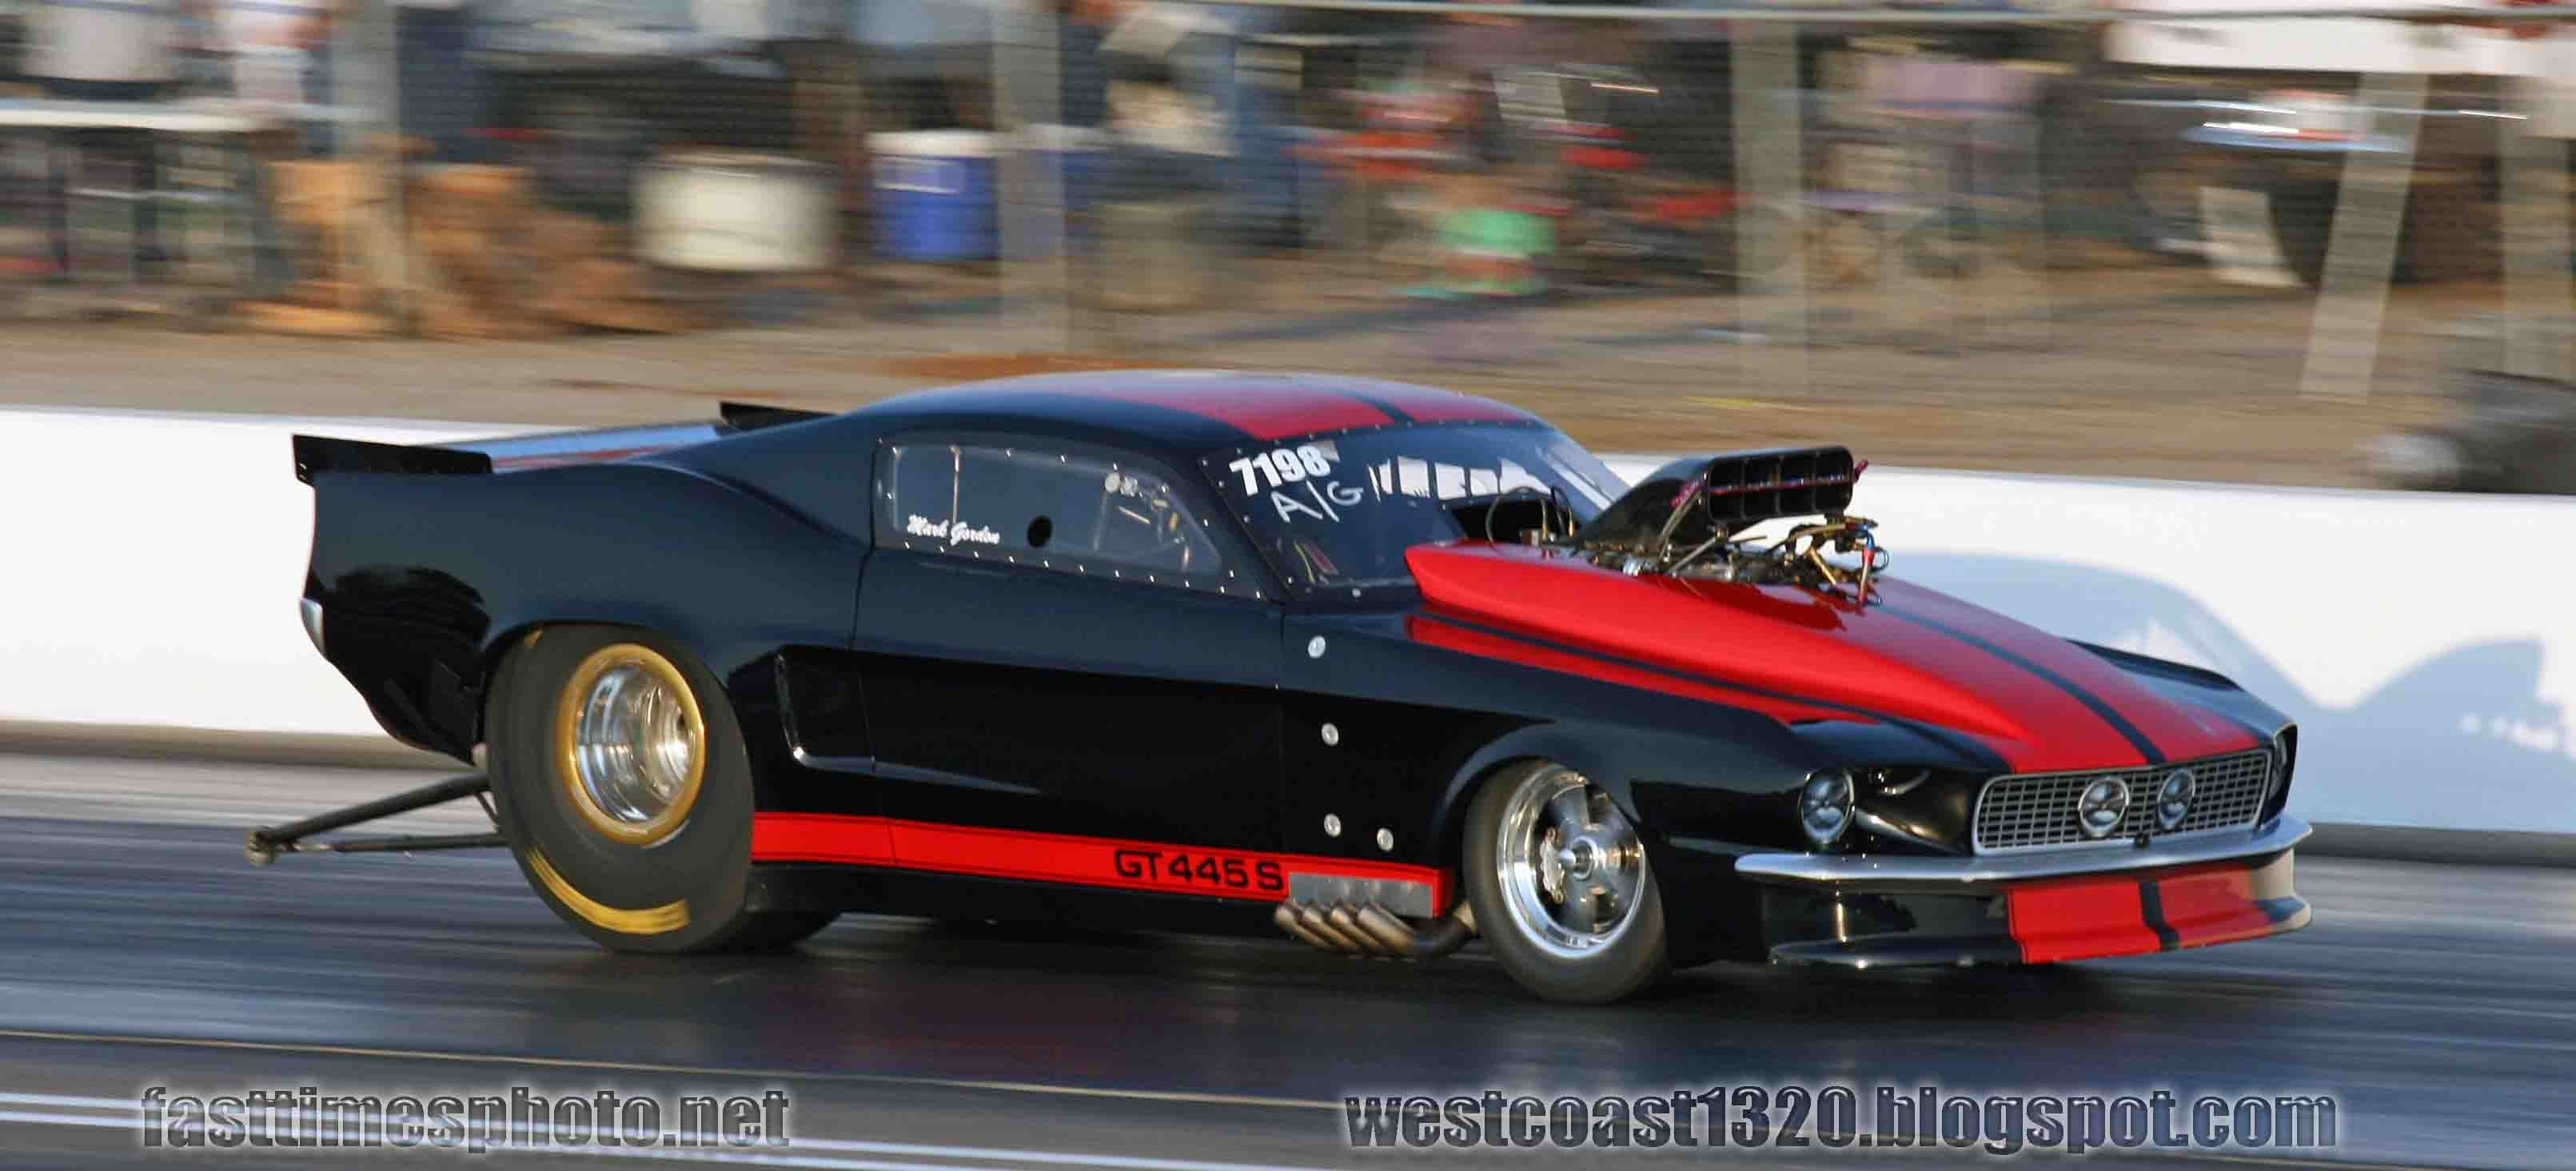 Res: 3222x1465, drag racing race hot rod rods funnycar funny r